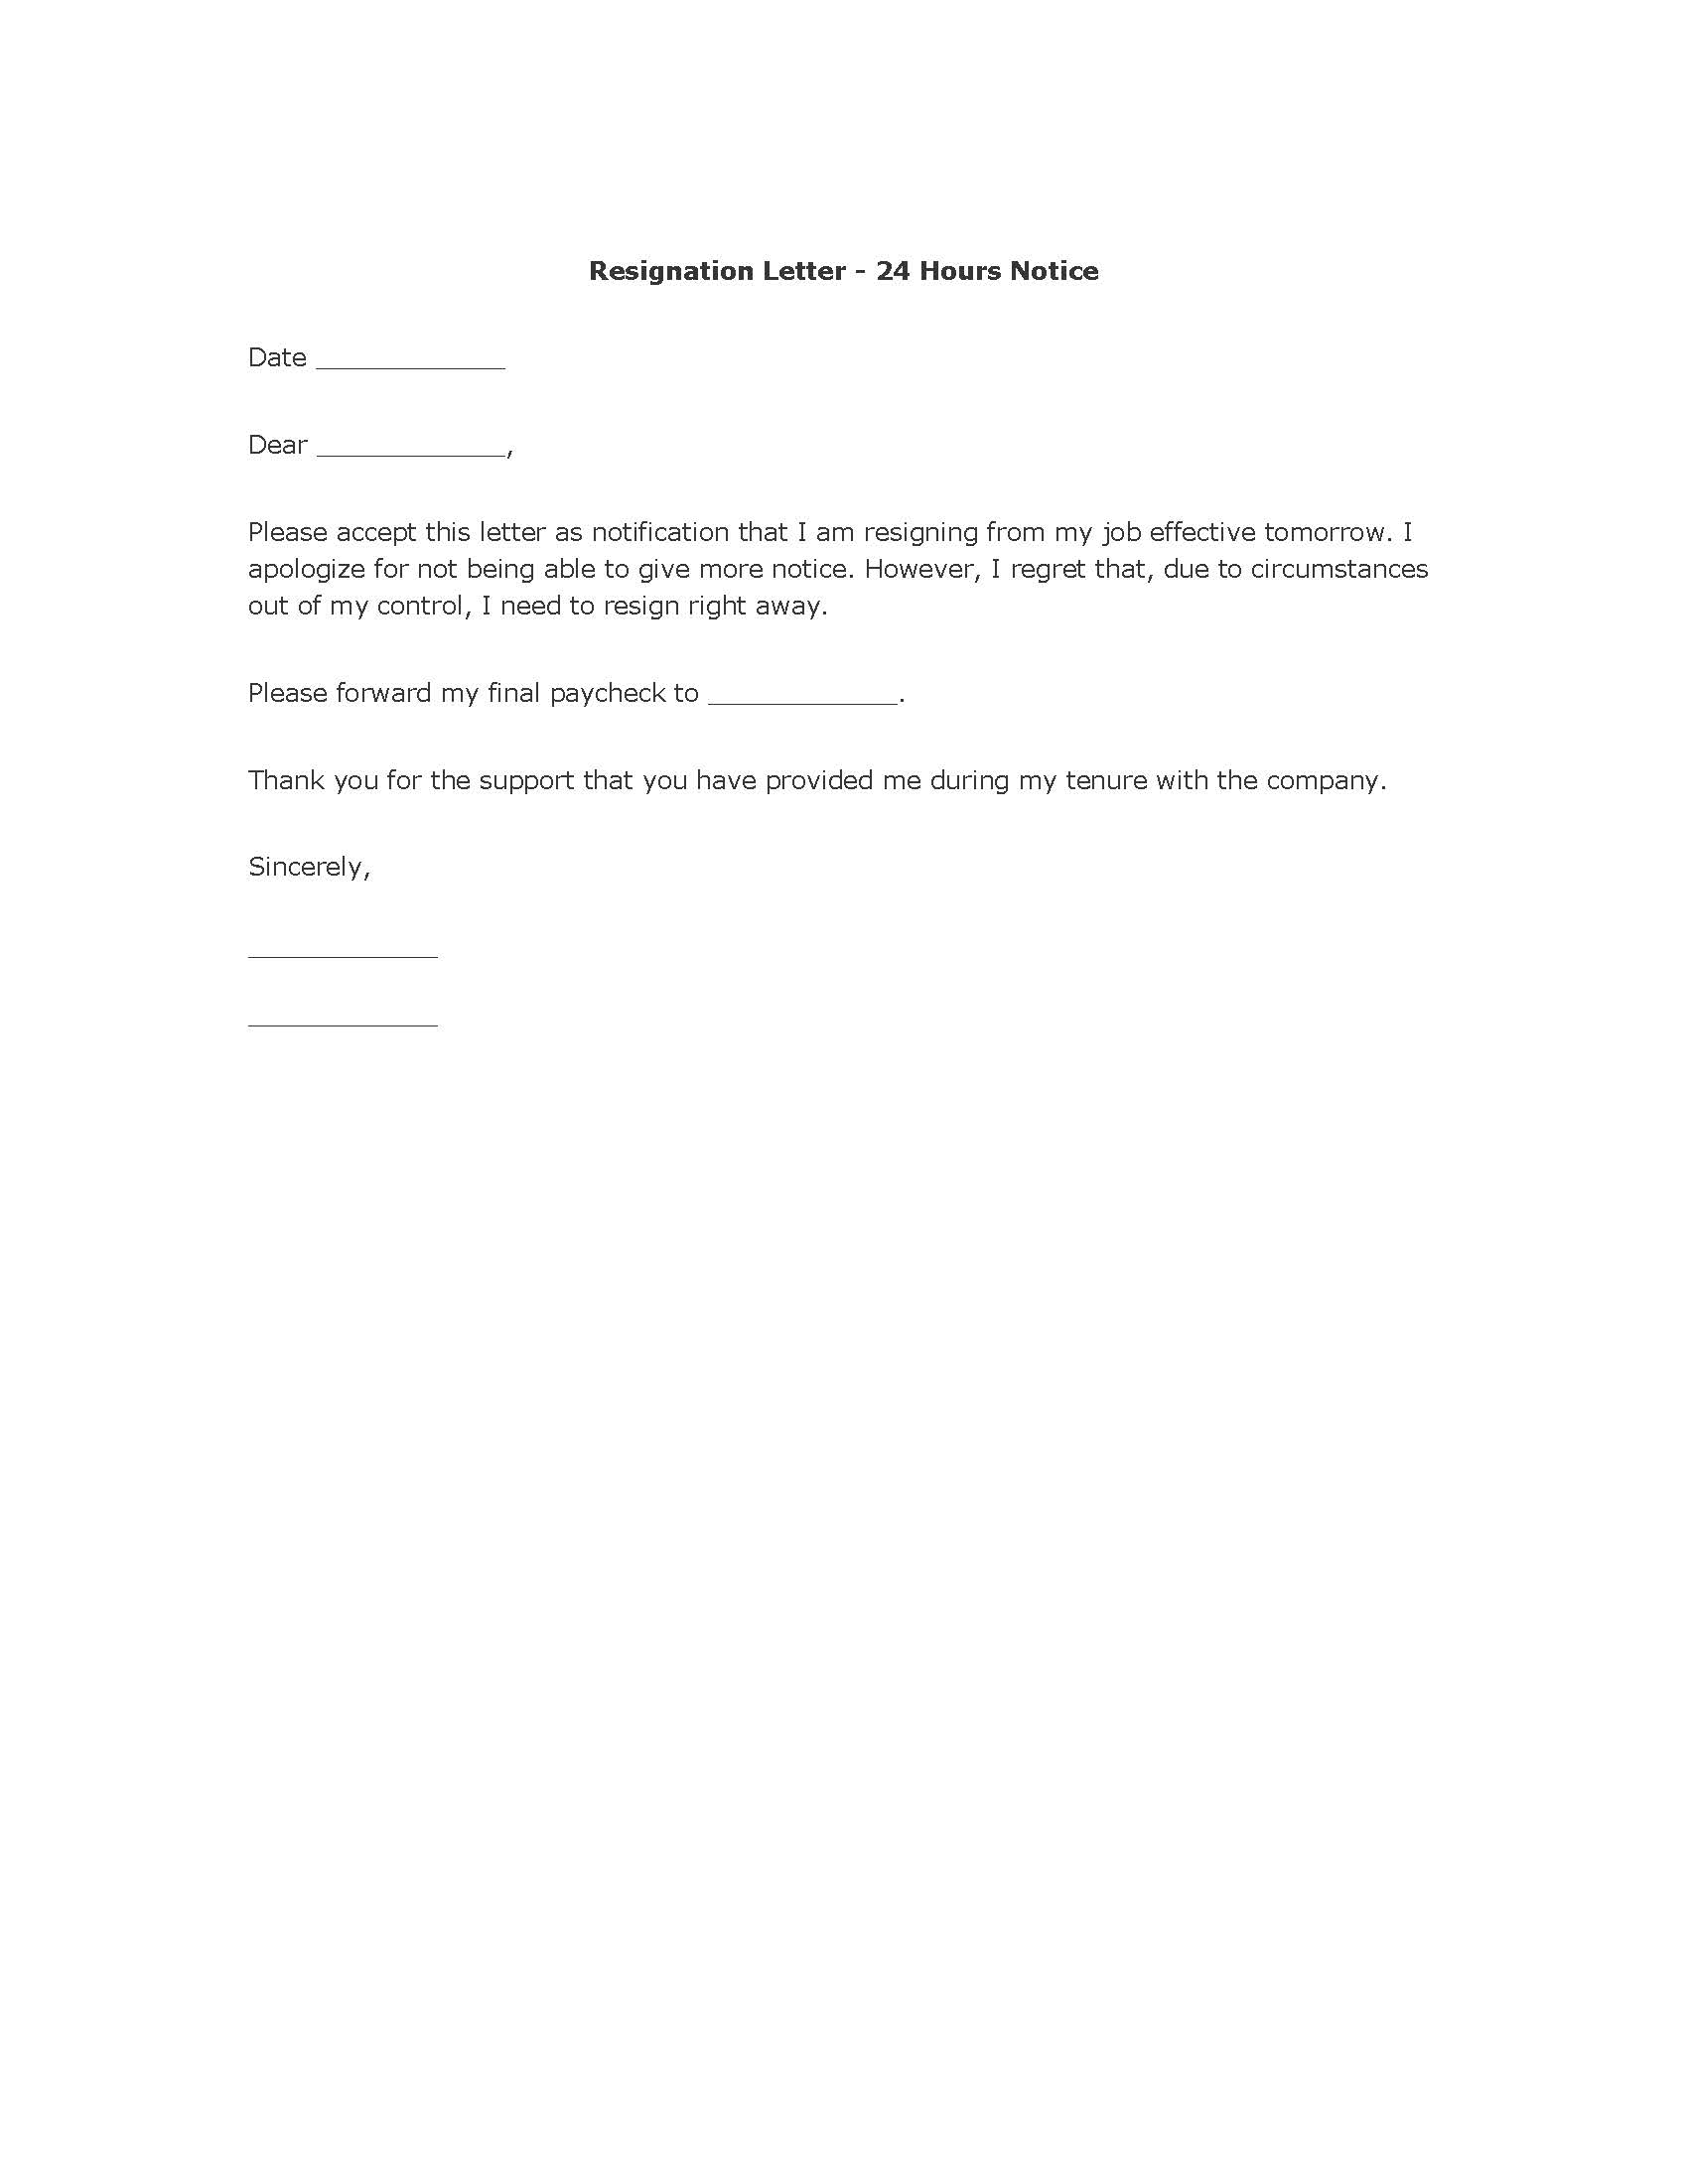 template letter of resignation from employment Template